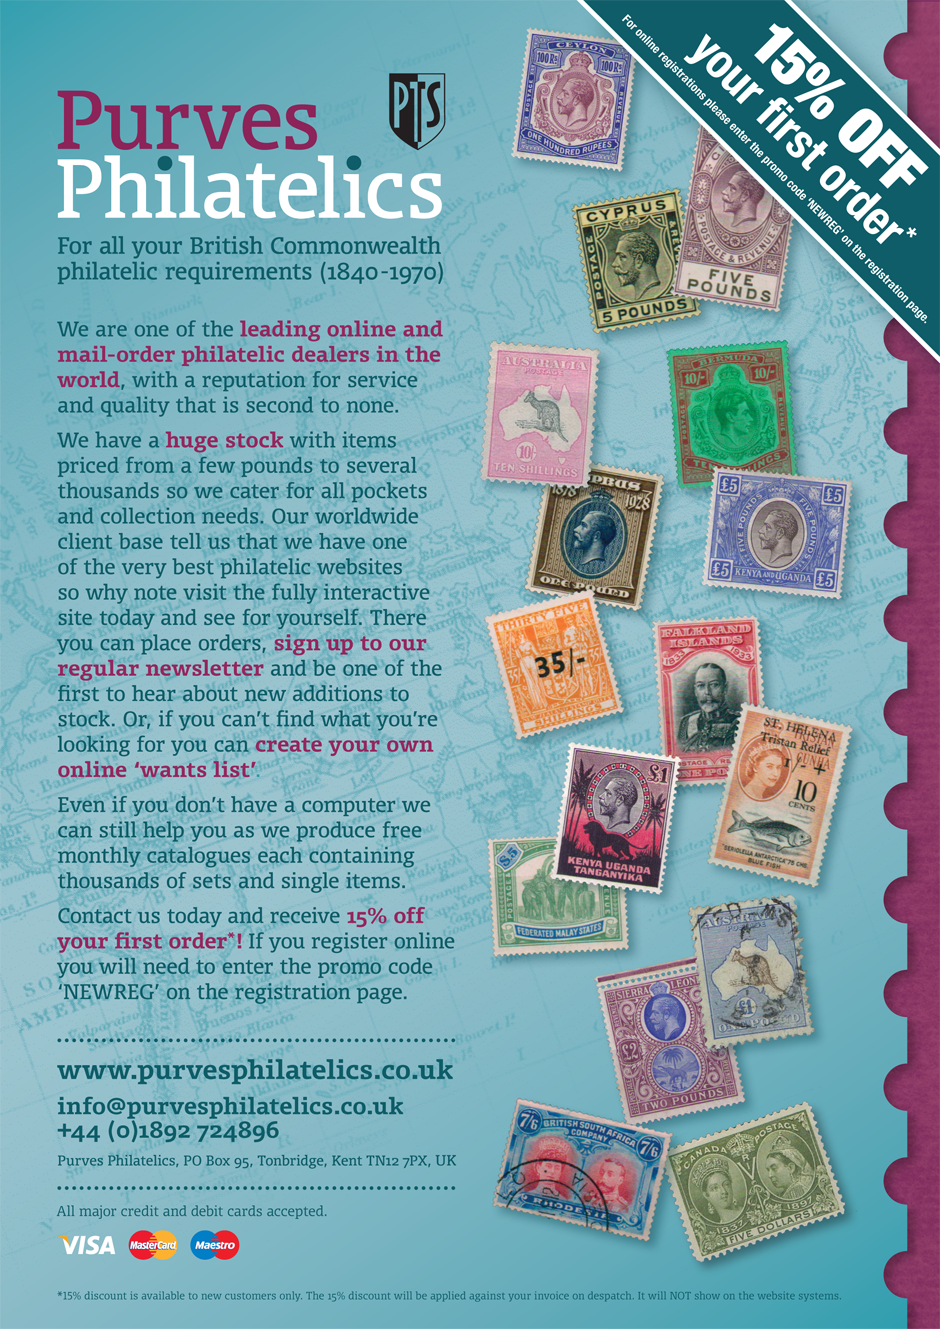 Purves Philatelics advert